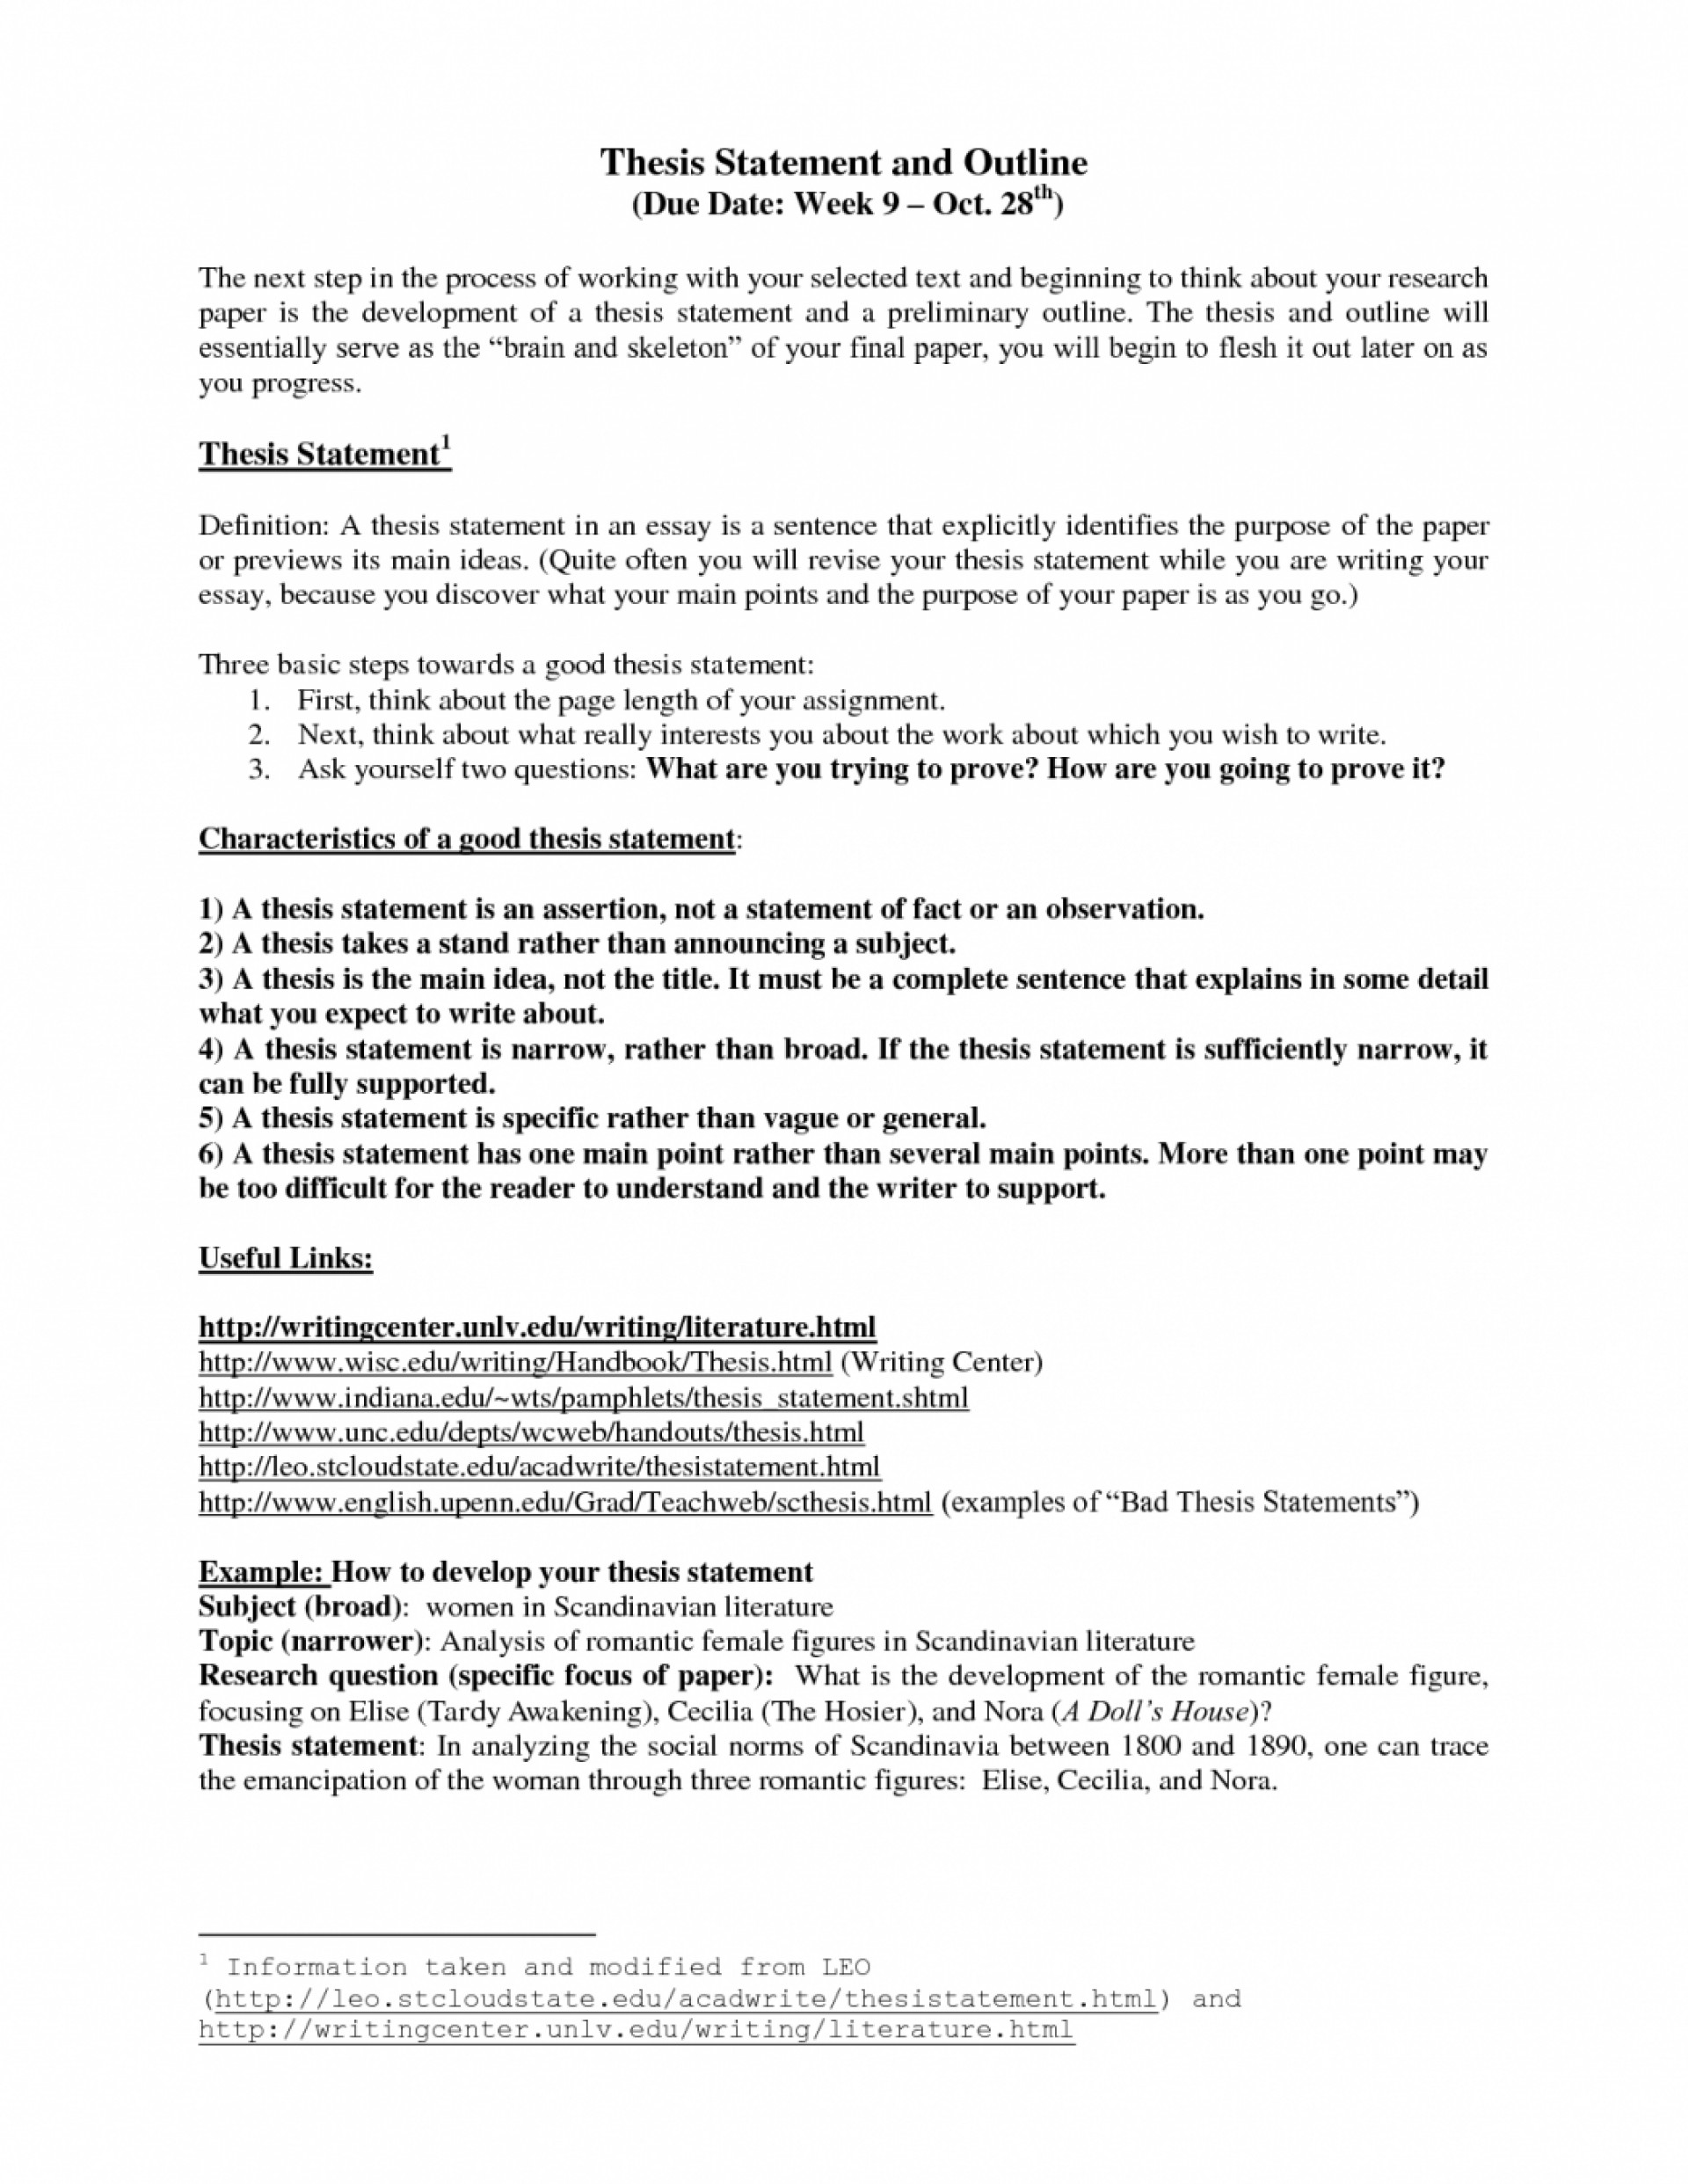 015 Thesis Statement Essay Sample Narrative Cover Letter Example Essays And Outline Template Wx8 Writing Powerpoint Ppt Step By 4th Grade About Being Judged Quizlet Someone Else Stirring Definition Examples For Argumentative 1920